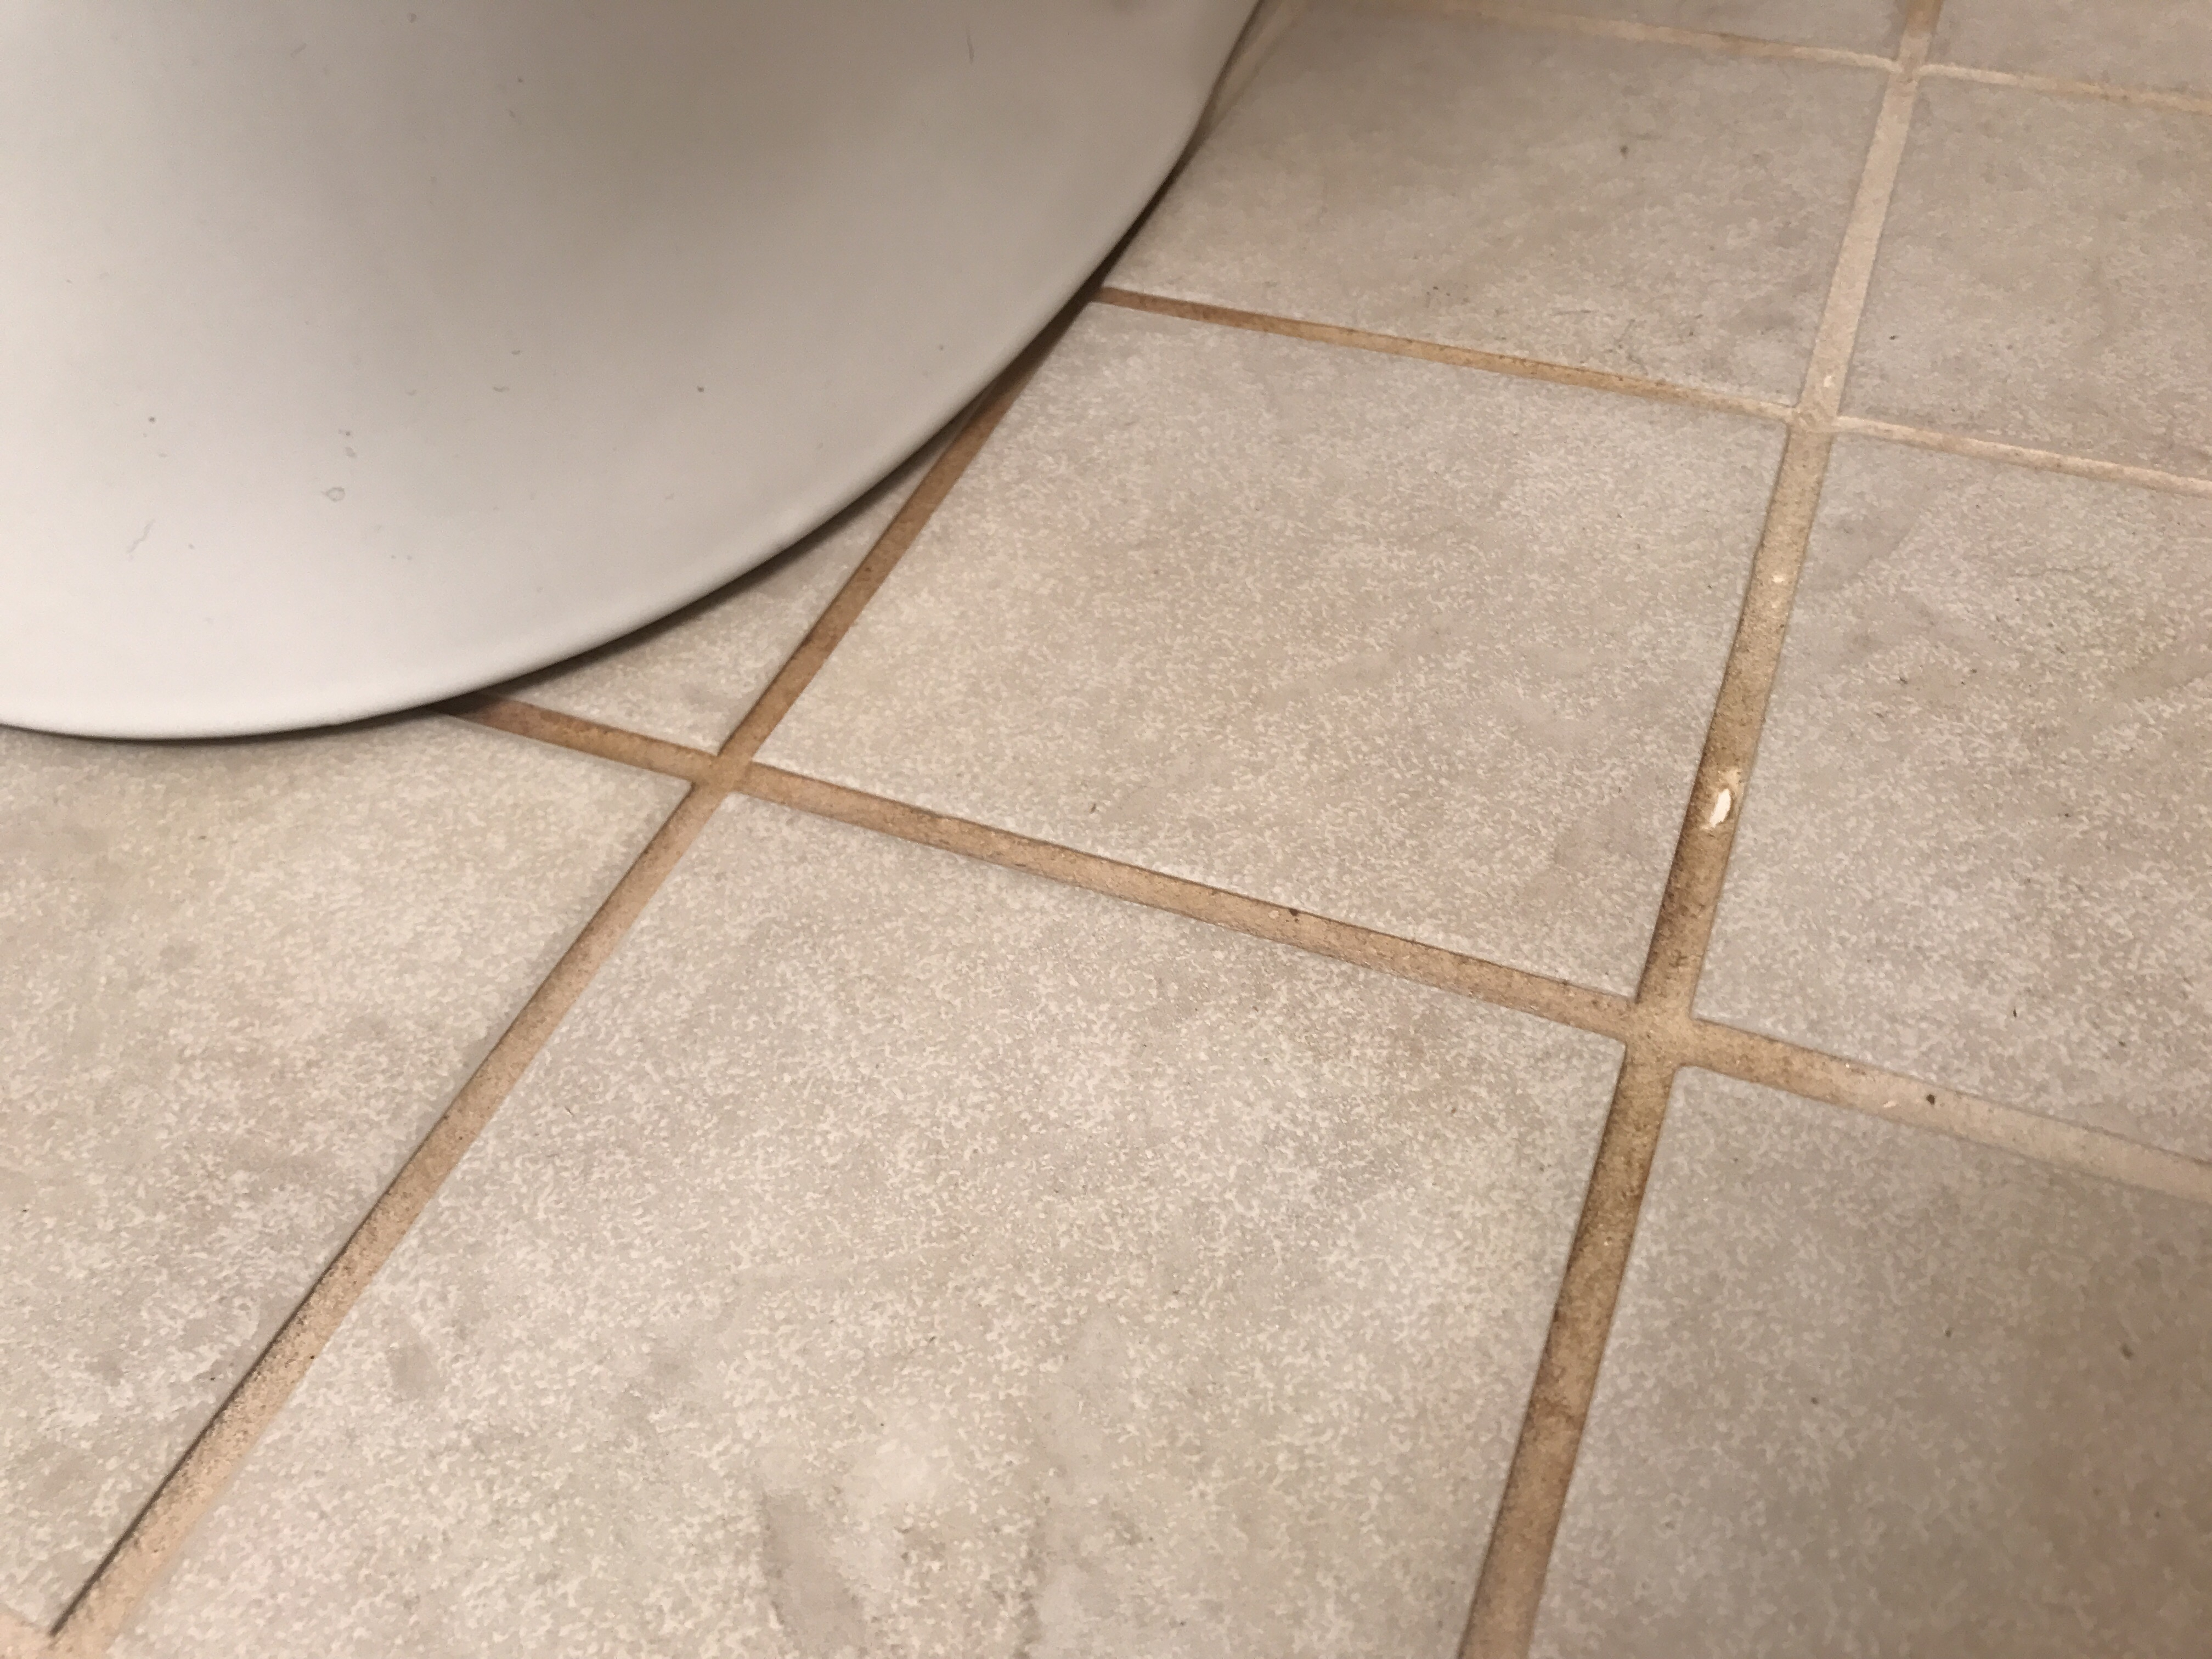 Get Rid Of UGLY Grout Without Ripping Up Your Tile - Dah tile